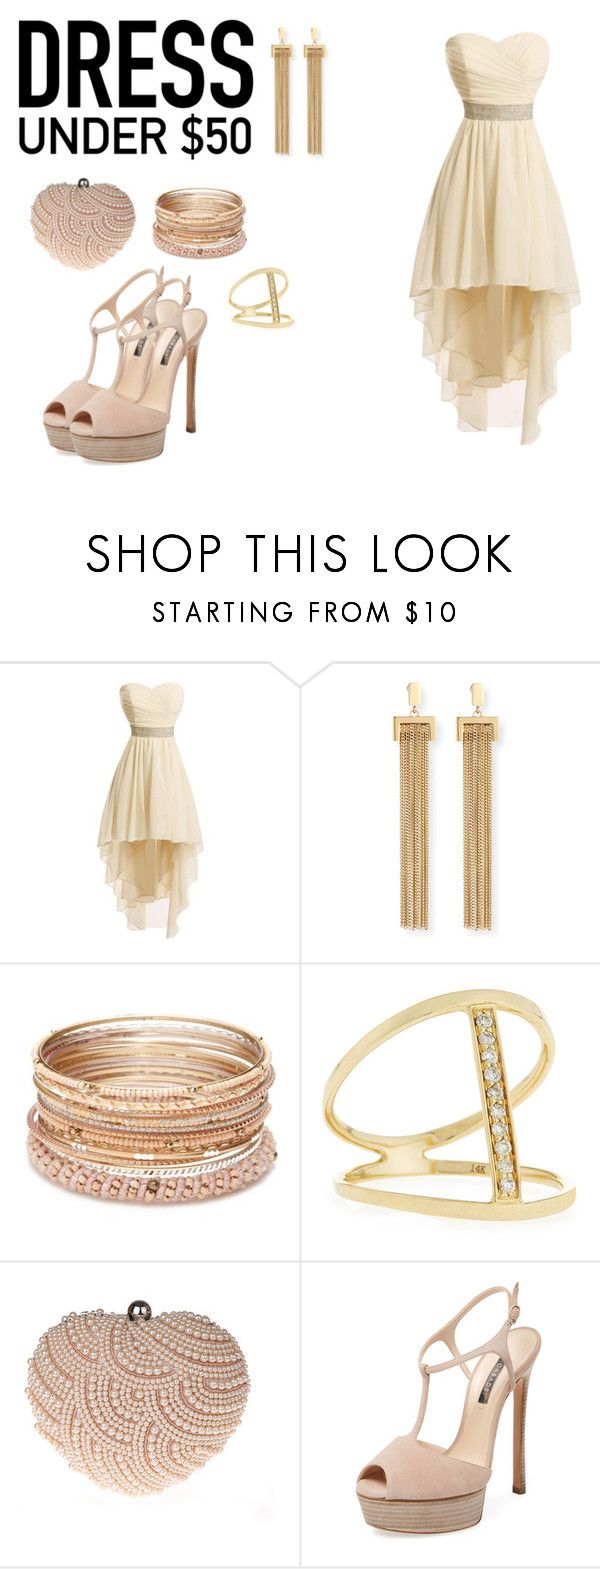 """""""homecoming dress under $50"""" by kimberlee-dawn ❤ liked on Polyvore featuring Chloé, Red Camel, Sydney Evan, Glam Cham, Casadei and Dressunder50"""